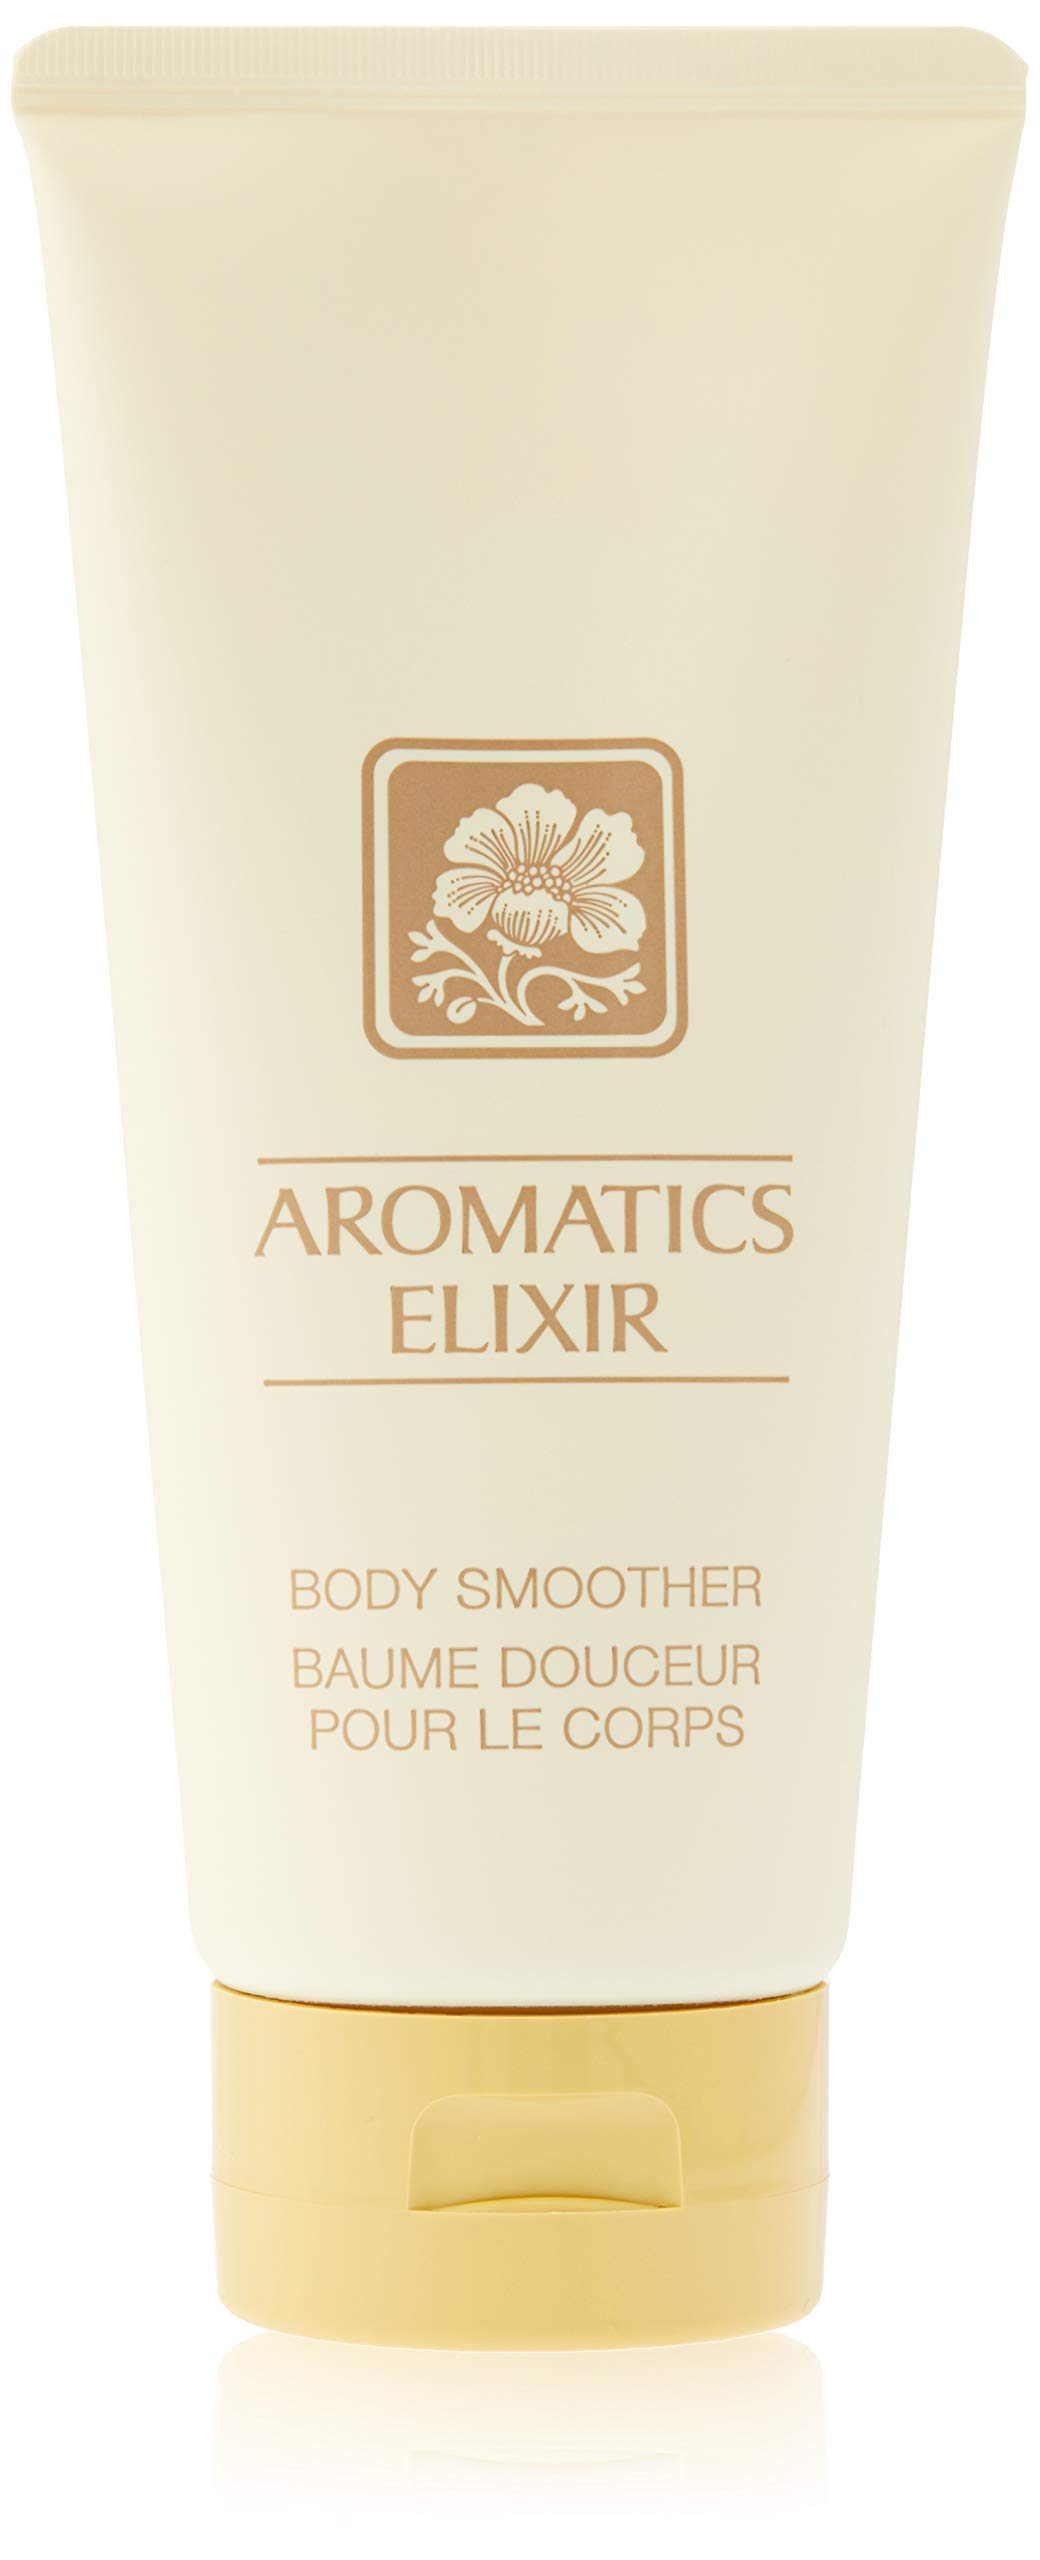 Aromatics Elixir By Clinique For Women. Body Smoother 6.7-Ounces by Clinique